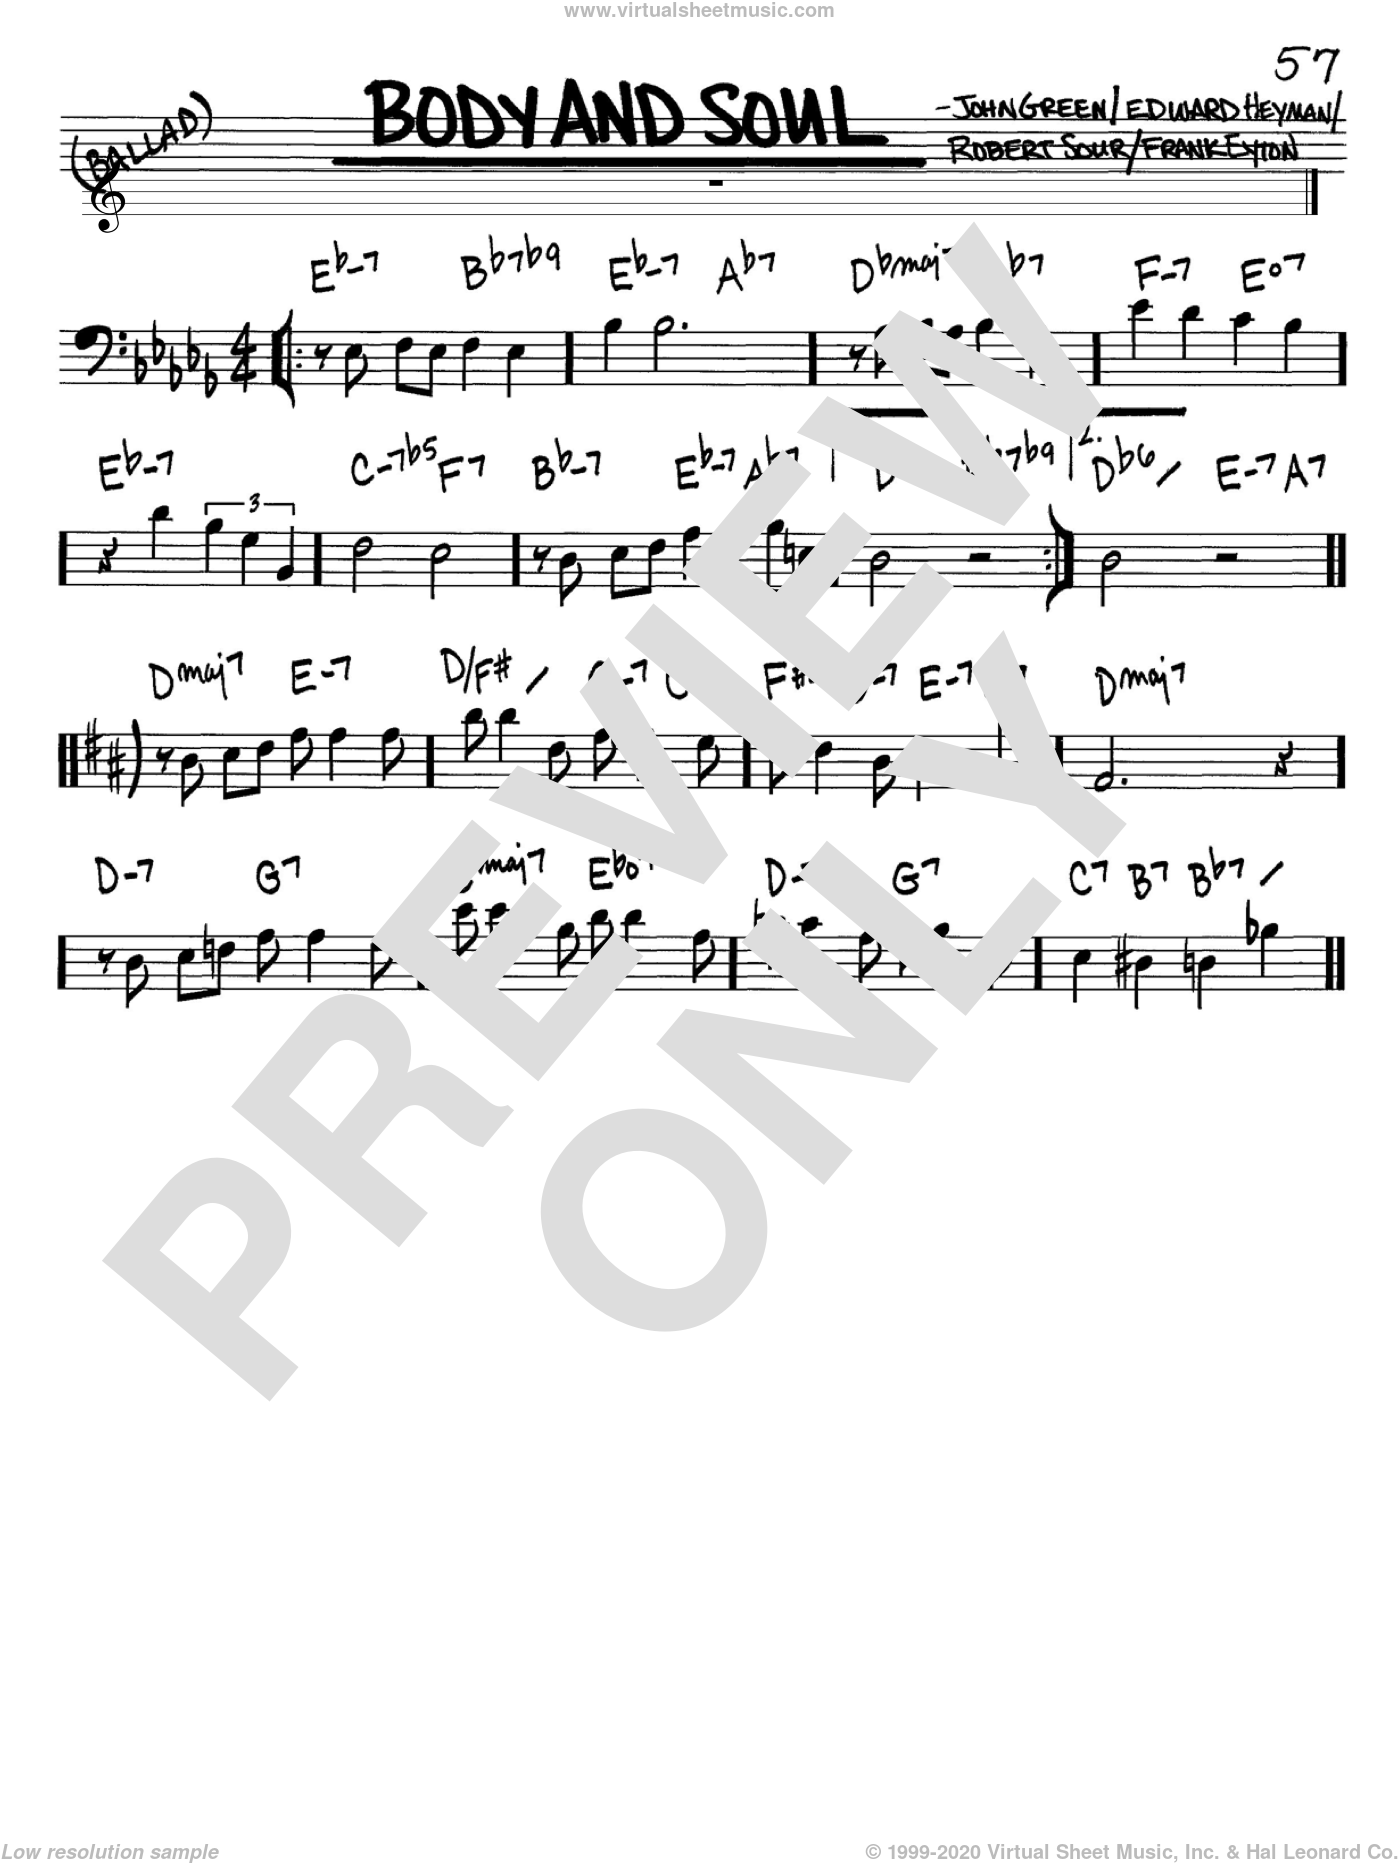 Body And Soul sheet music for voice and other instruments (Bass Clef ) by Edward Heyman, Frank Eyton, Johnny Green and Robert Sour, intermediate voice. Score Image Preview.